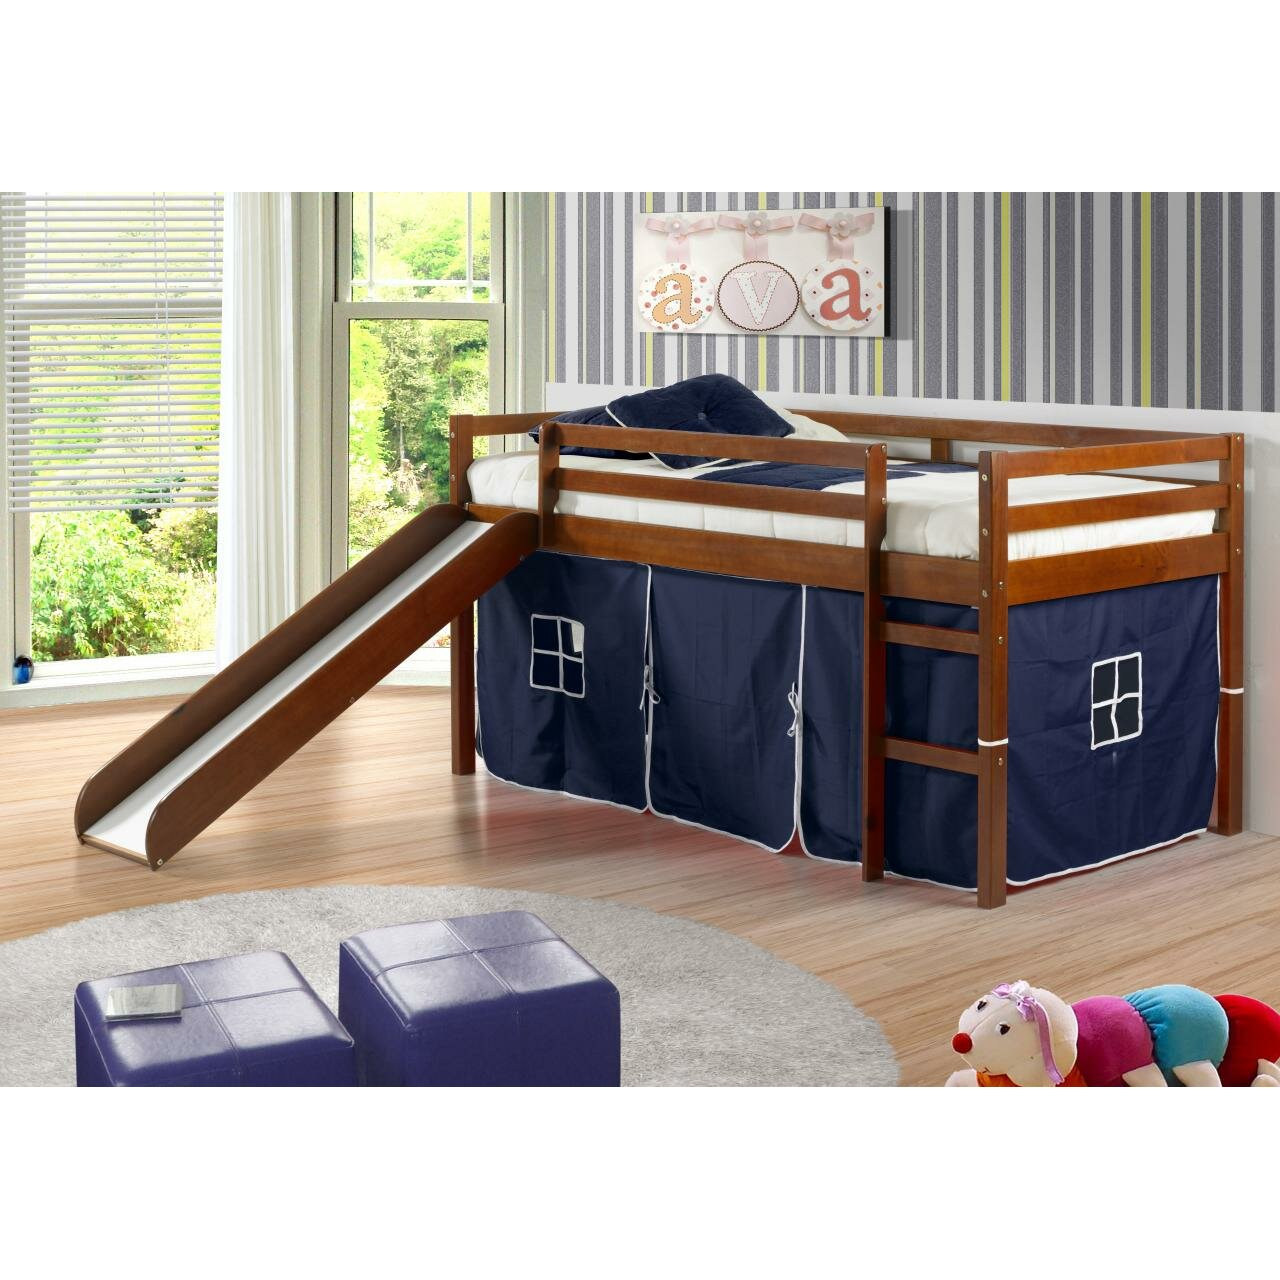 Double bunk beds with slide - Tent Twin Low Loft Bed With Slide